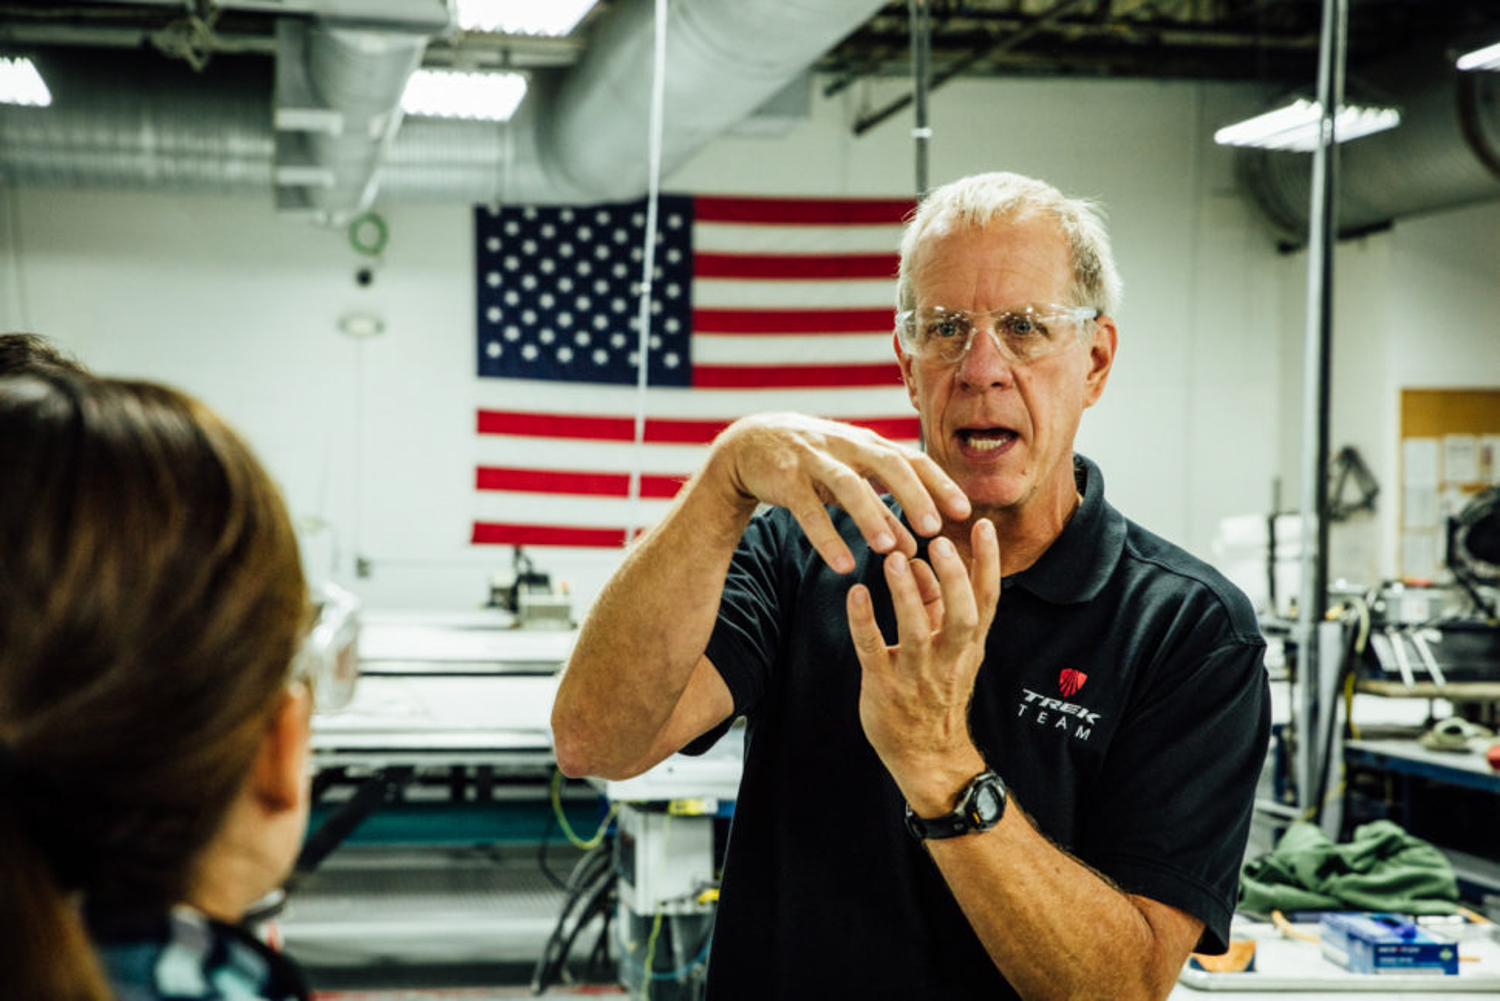 Manufacturing engineer Jim Colegrove in his element during the factory tour. Colegrove joined Trek in 1990 and helped develop Trek's first carbon fiber frame.